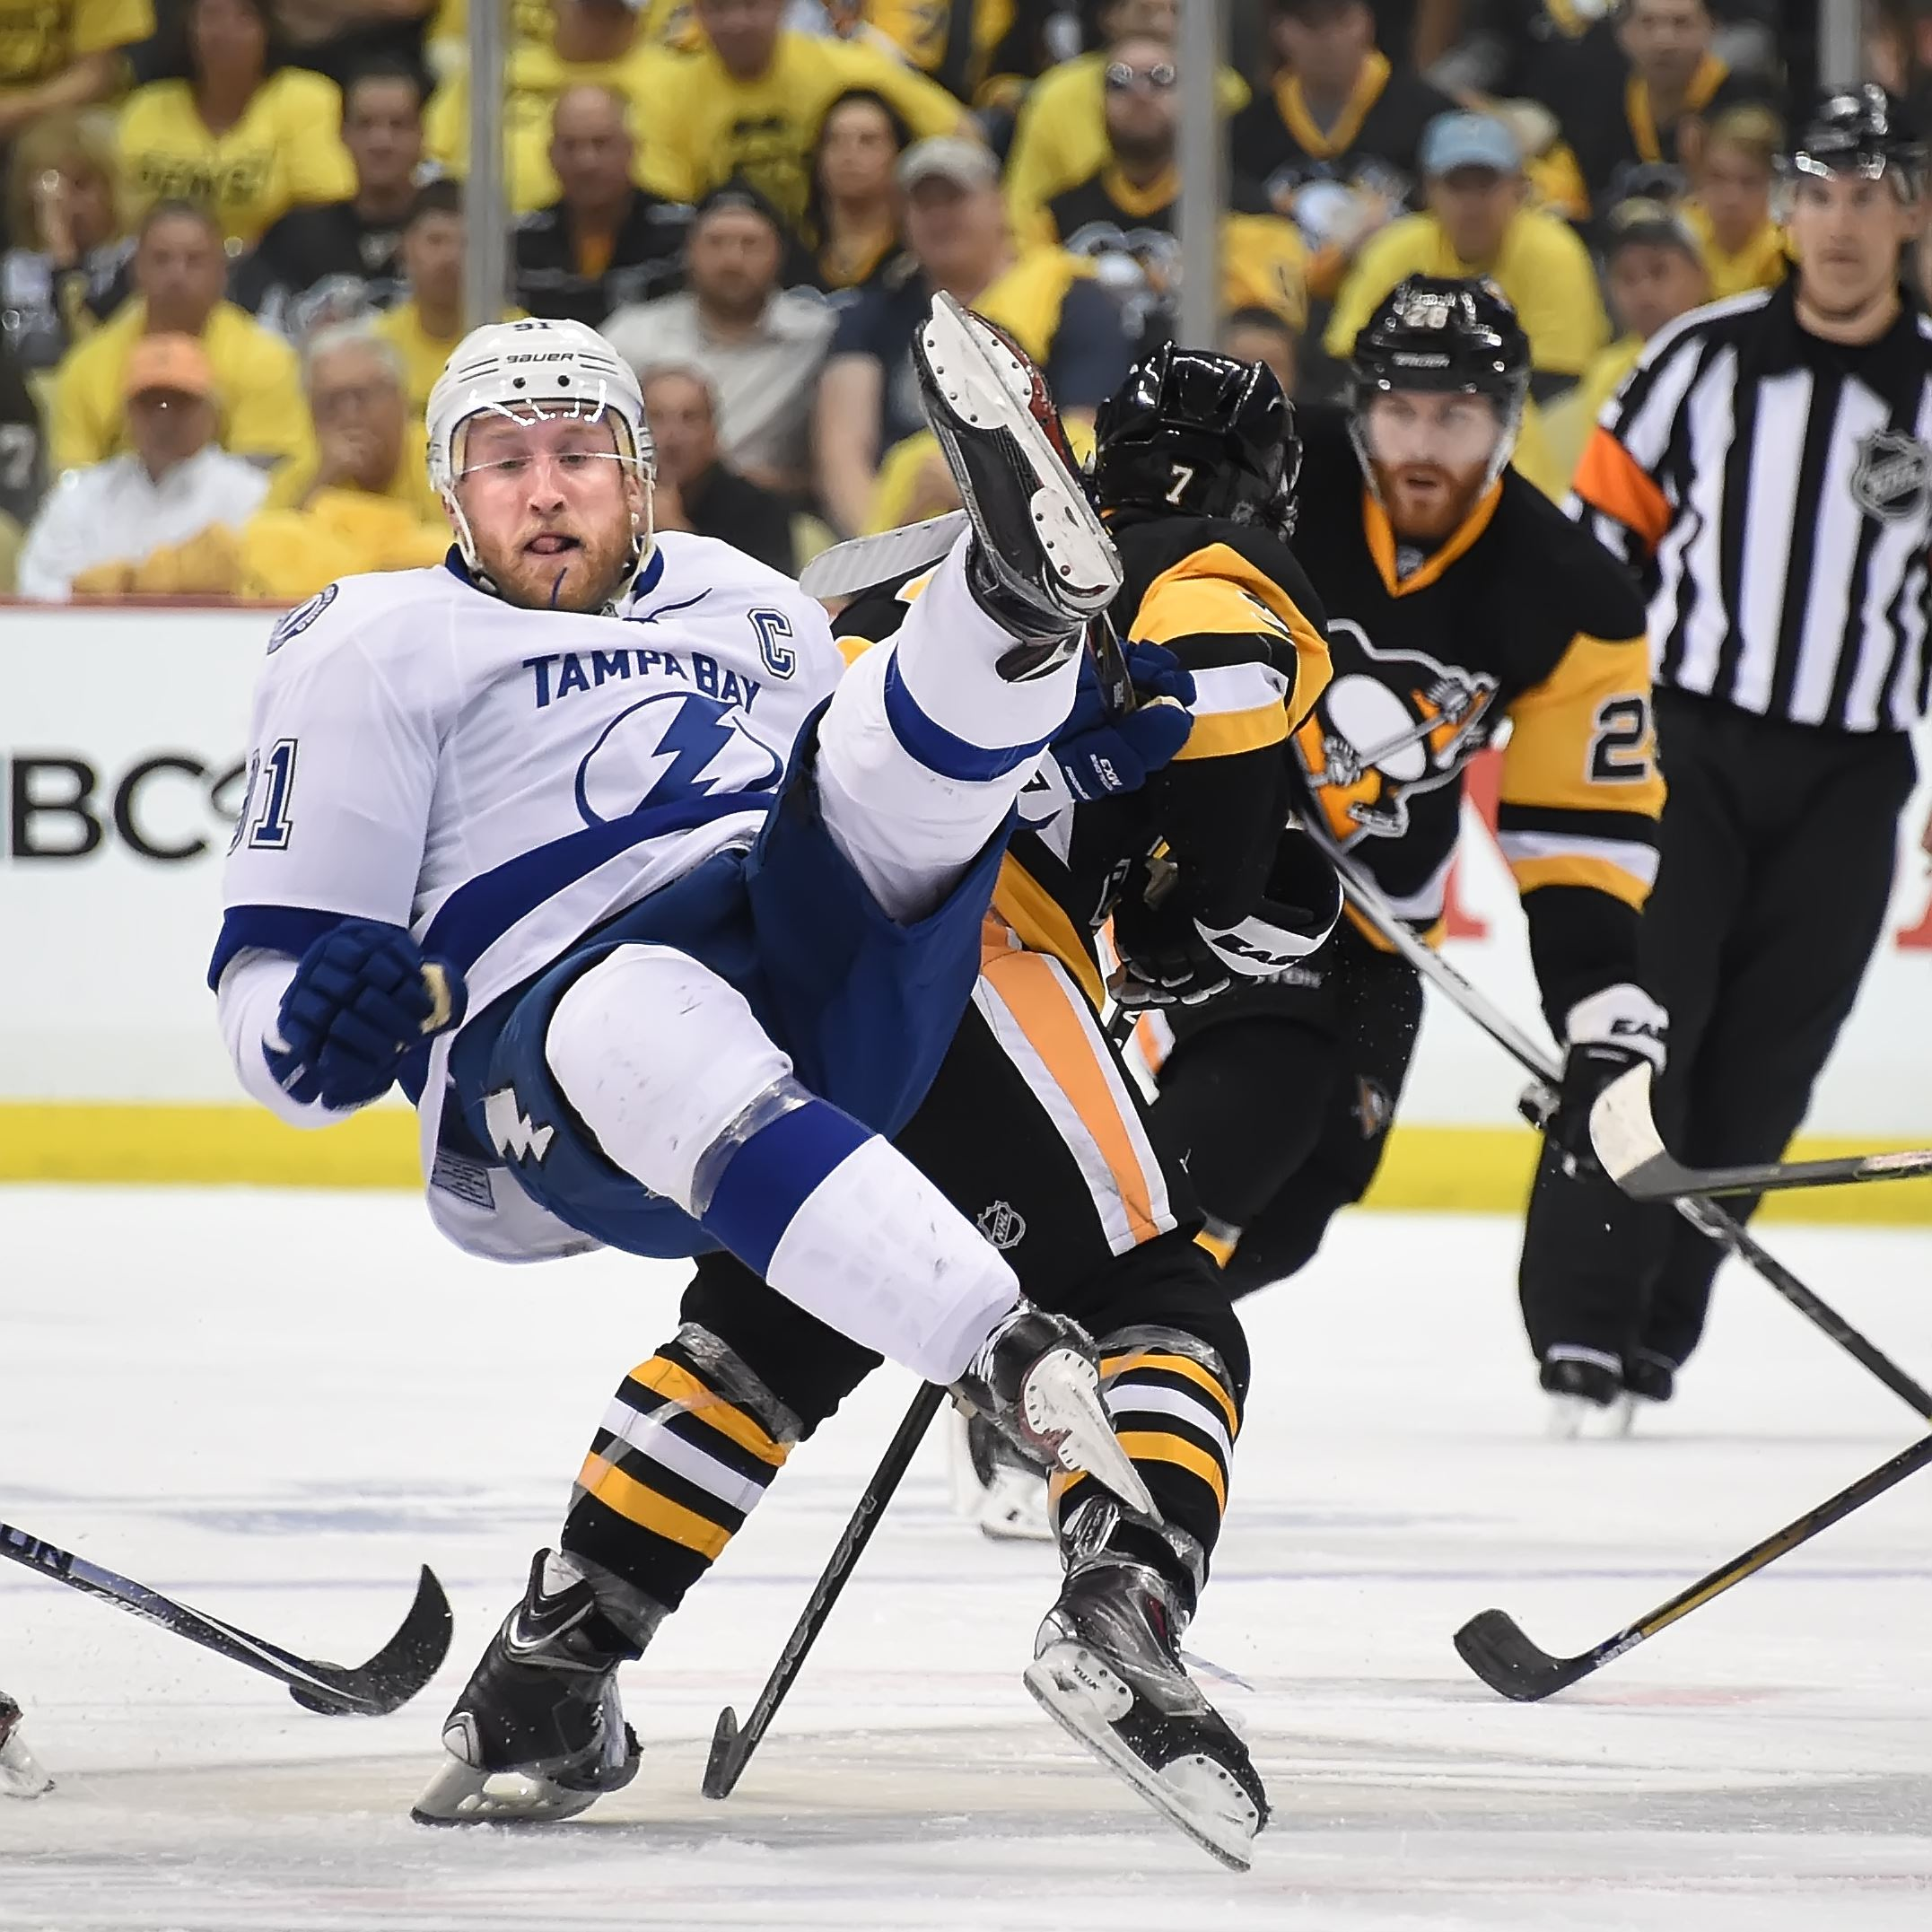 Return of Steven Stamkos gives Lightning lift, but not enough to win